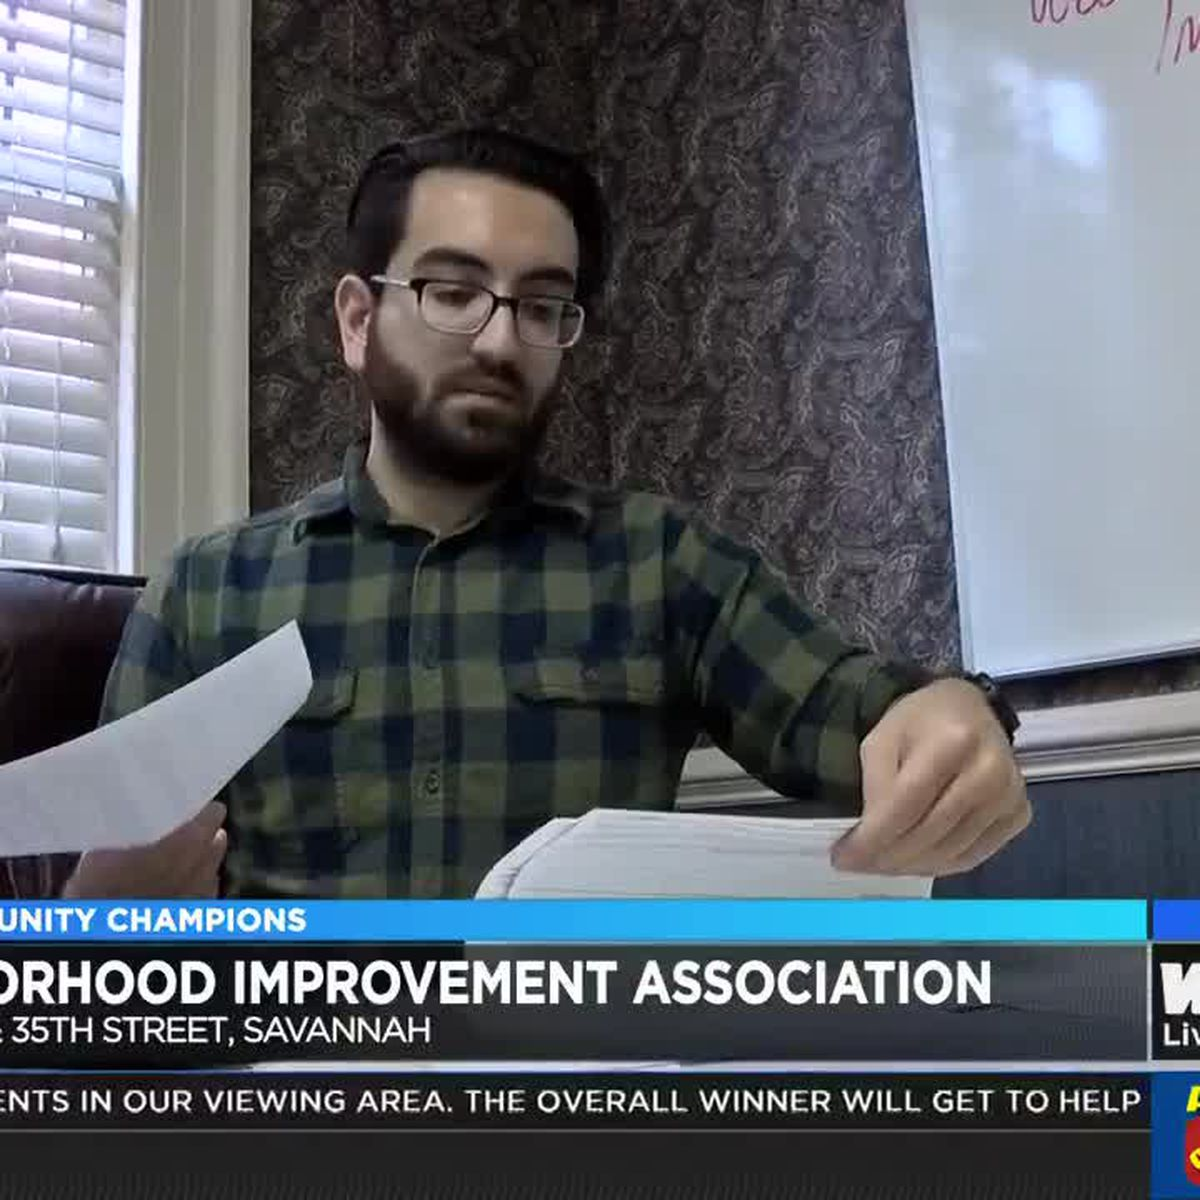 Community Champion: Neighborhood Improvement Association